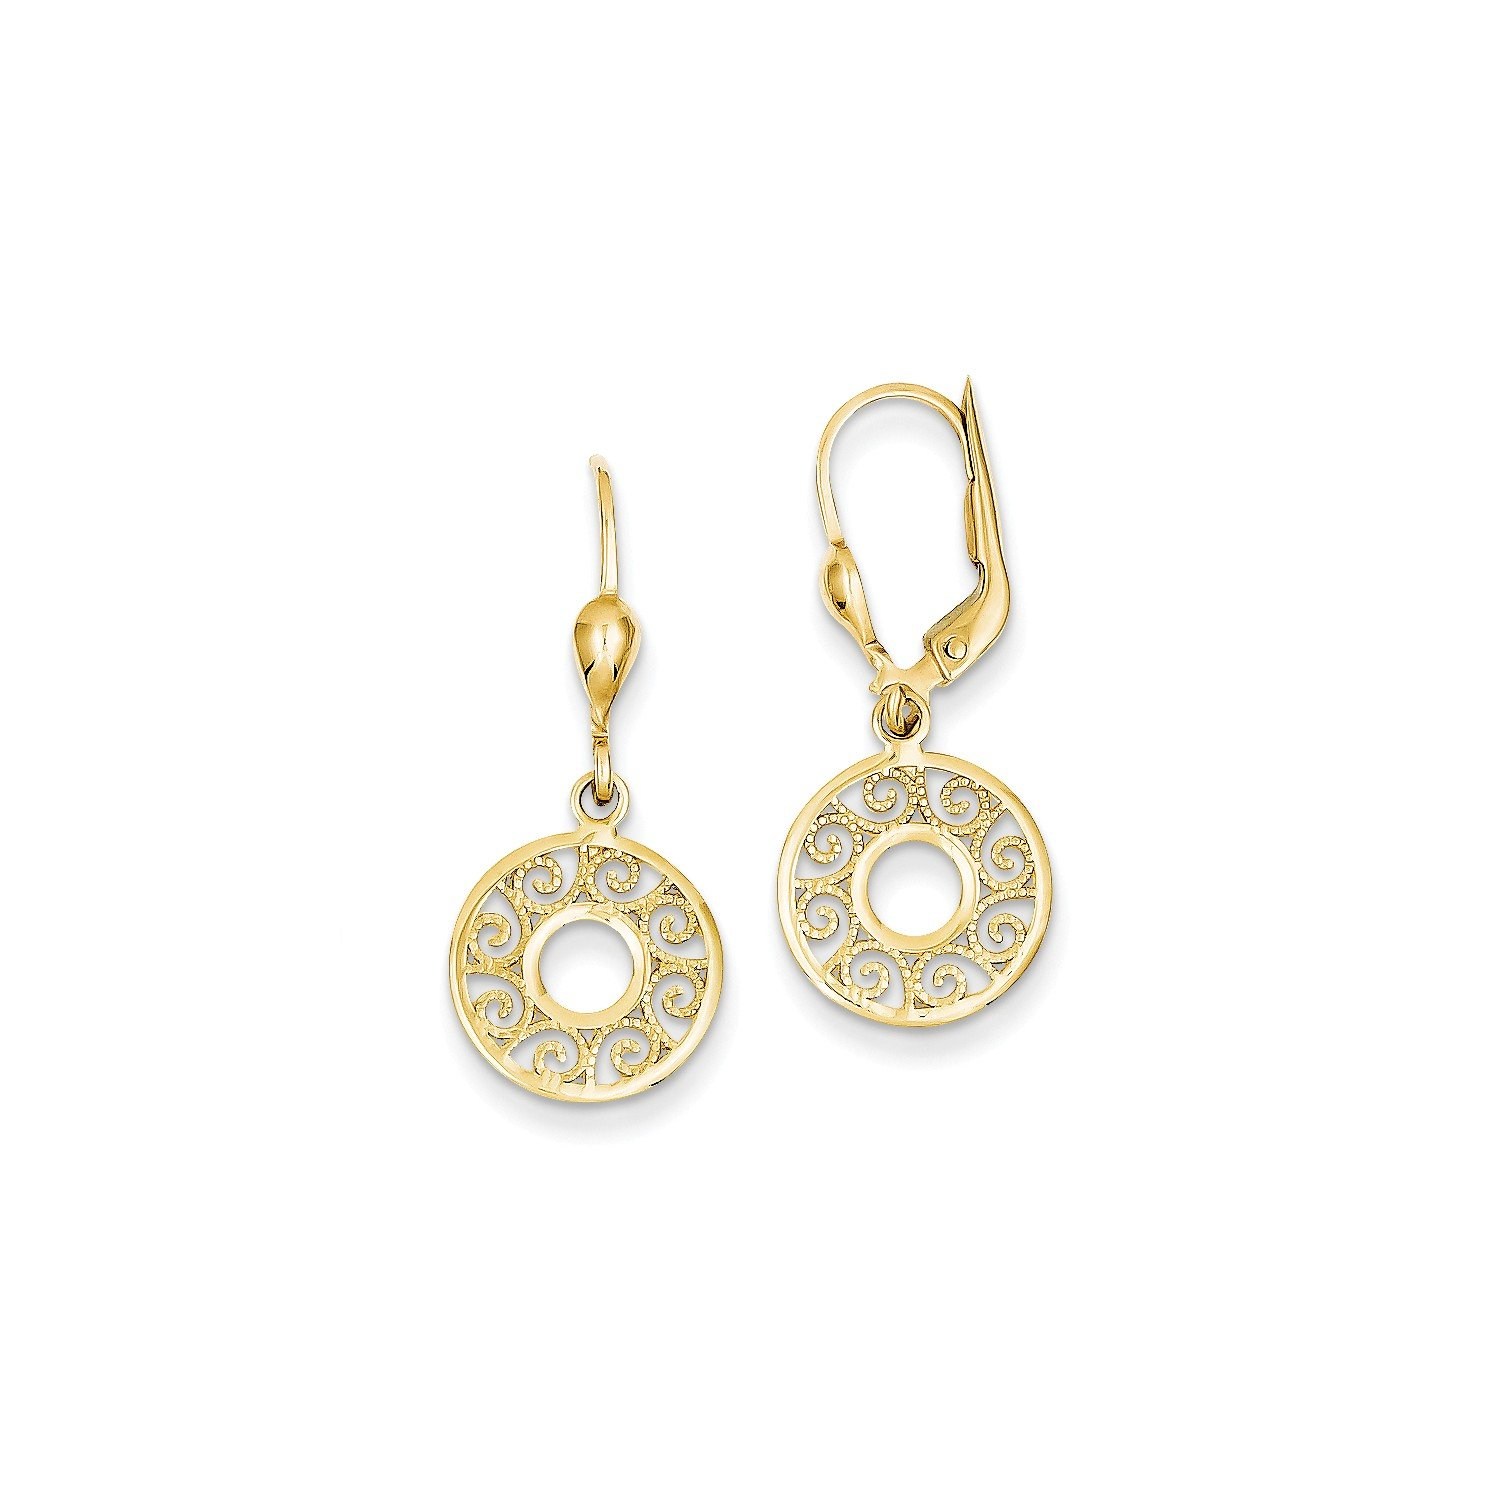 Roy Rose Jewelry 14K Yellow Gold Leverback Filigree Earrings